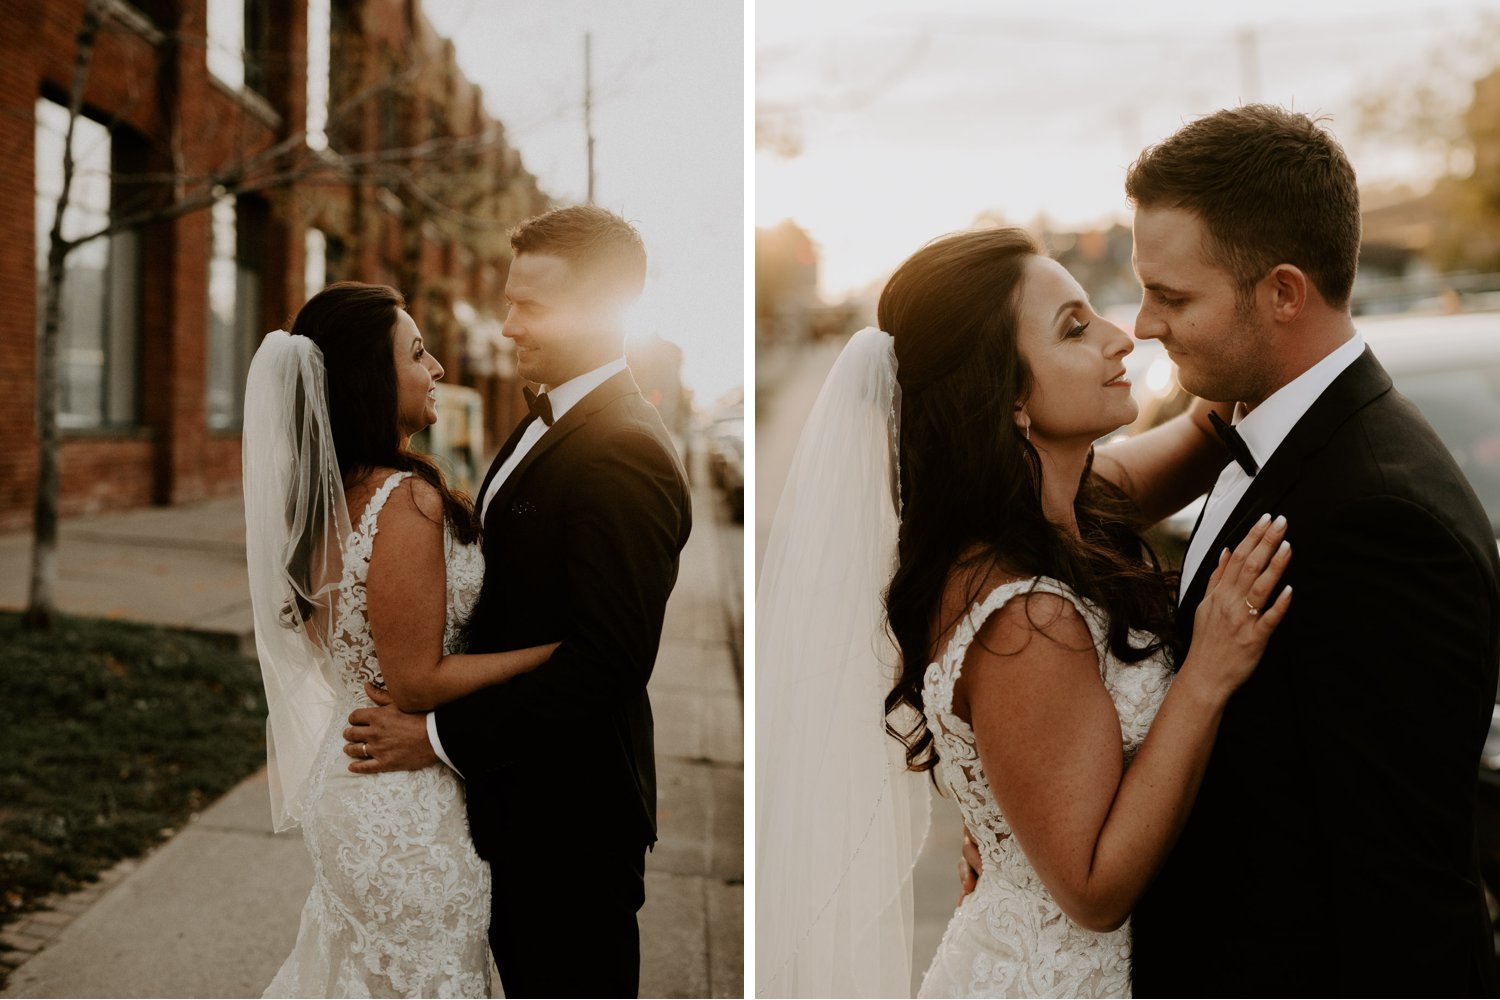 Caffino wedding - bride and groom embrace at sunset